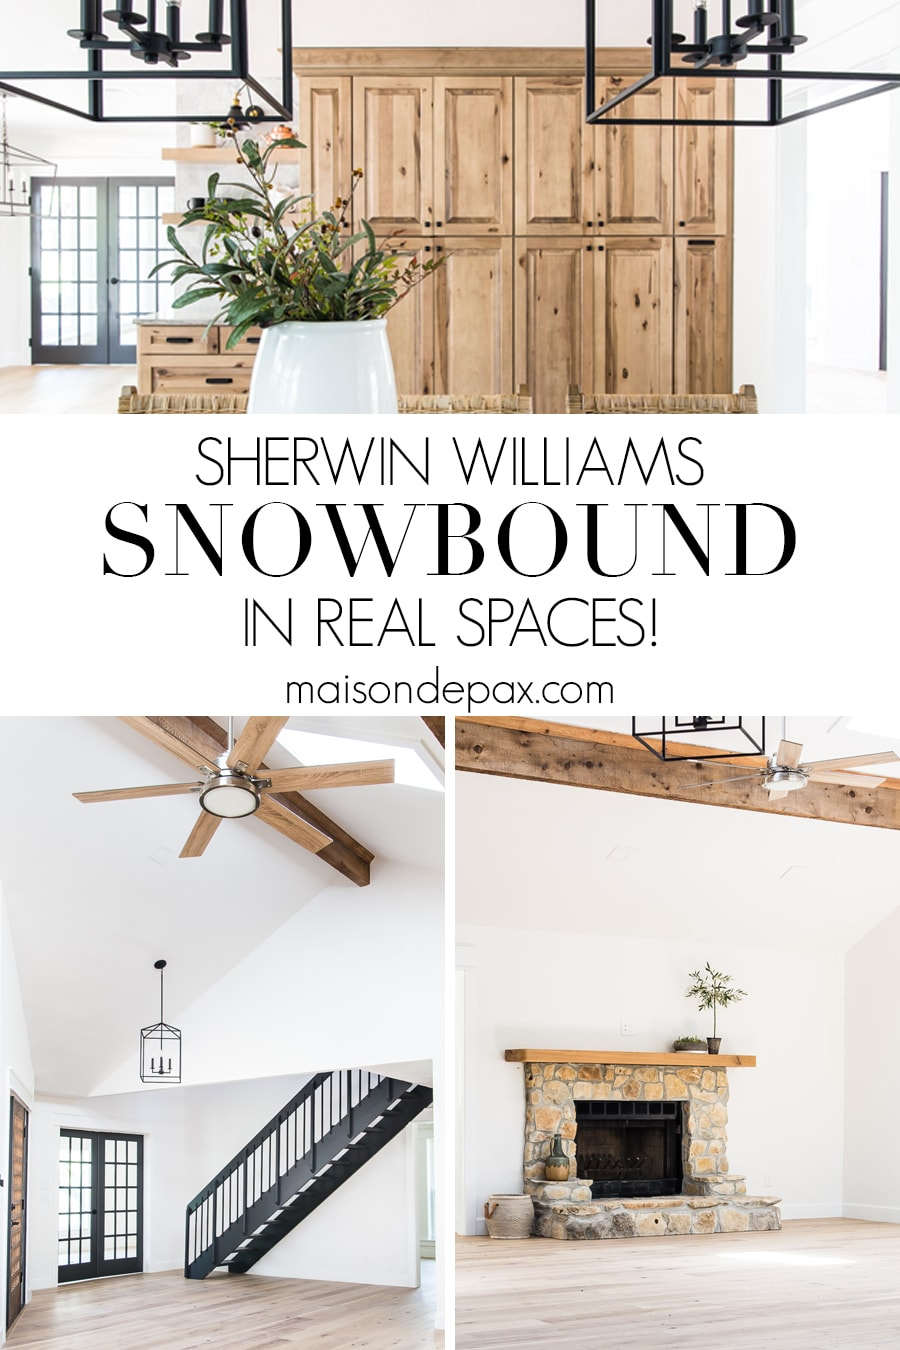 SW Snowbound in real spaces!